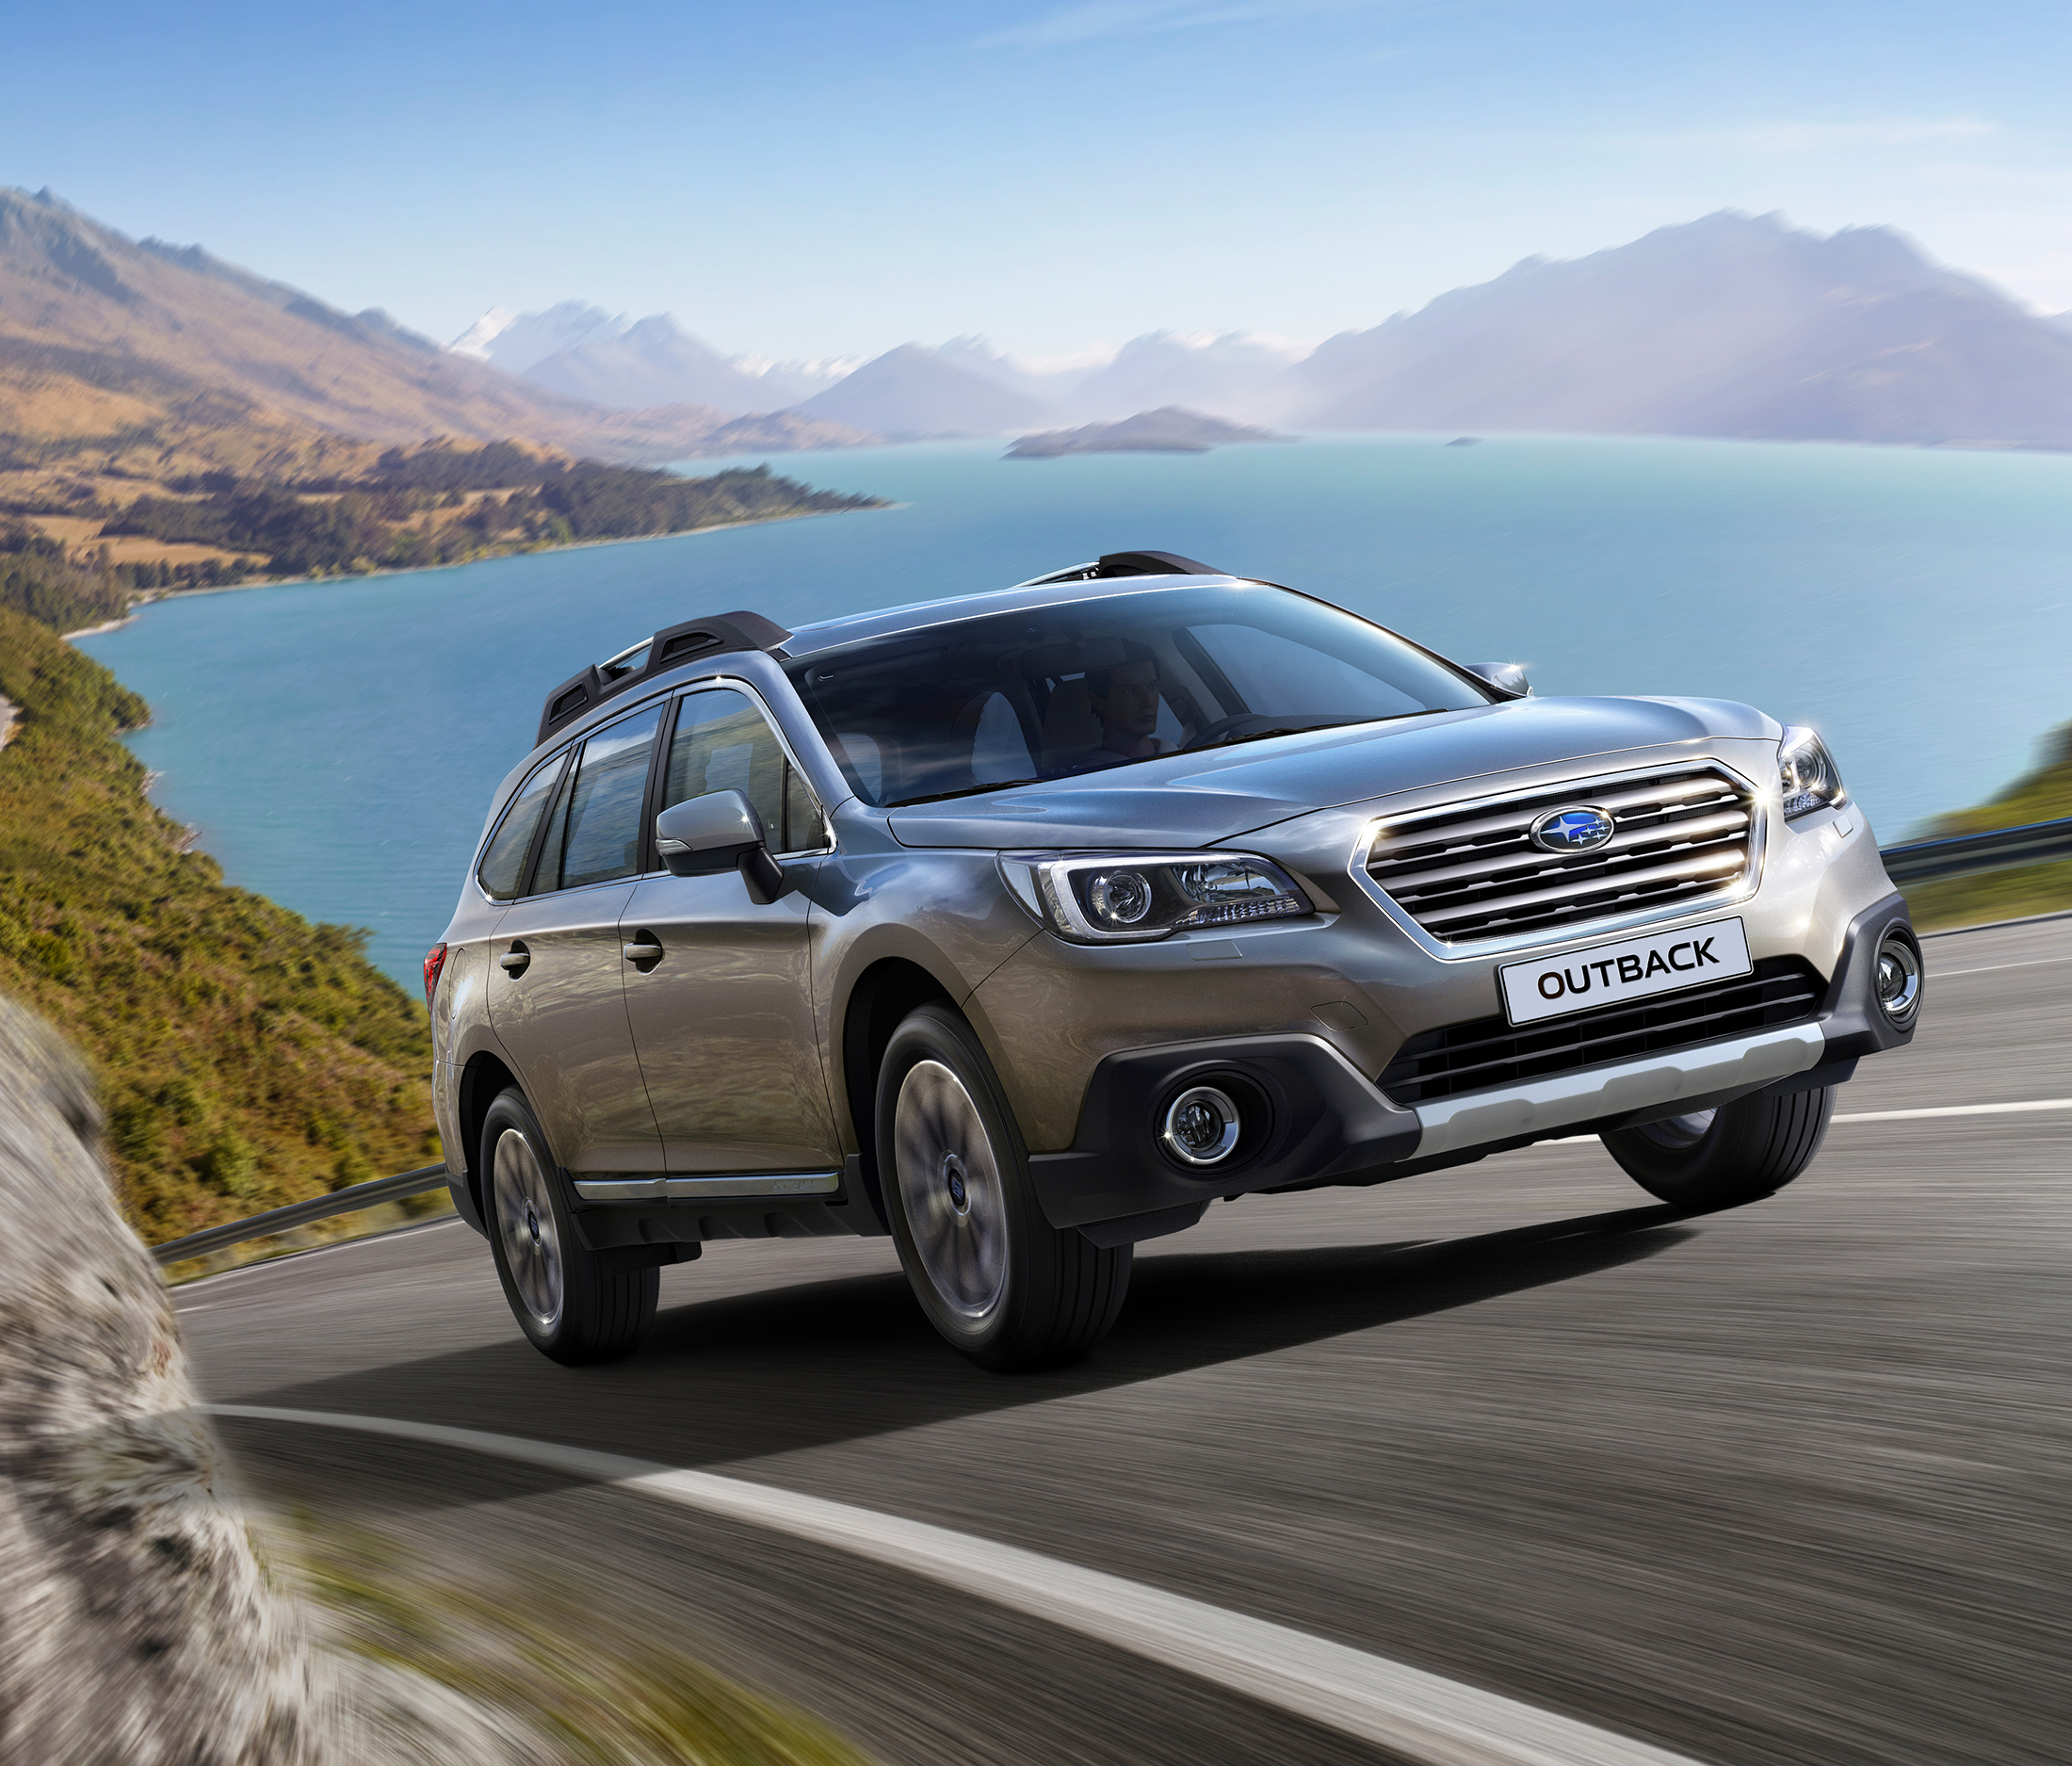 Subaru Outback Full HD Wallpaper And Background Image